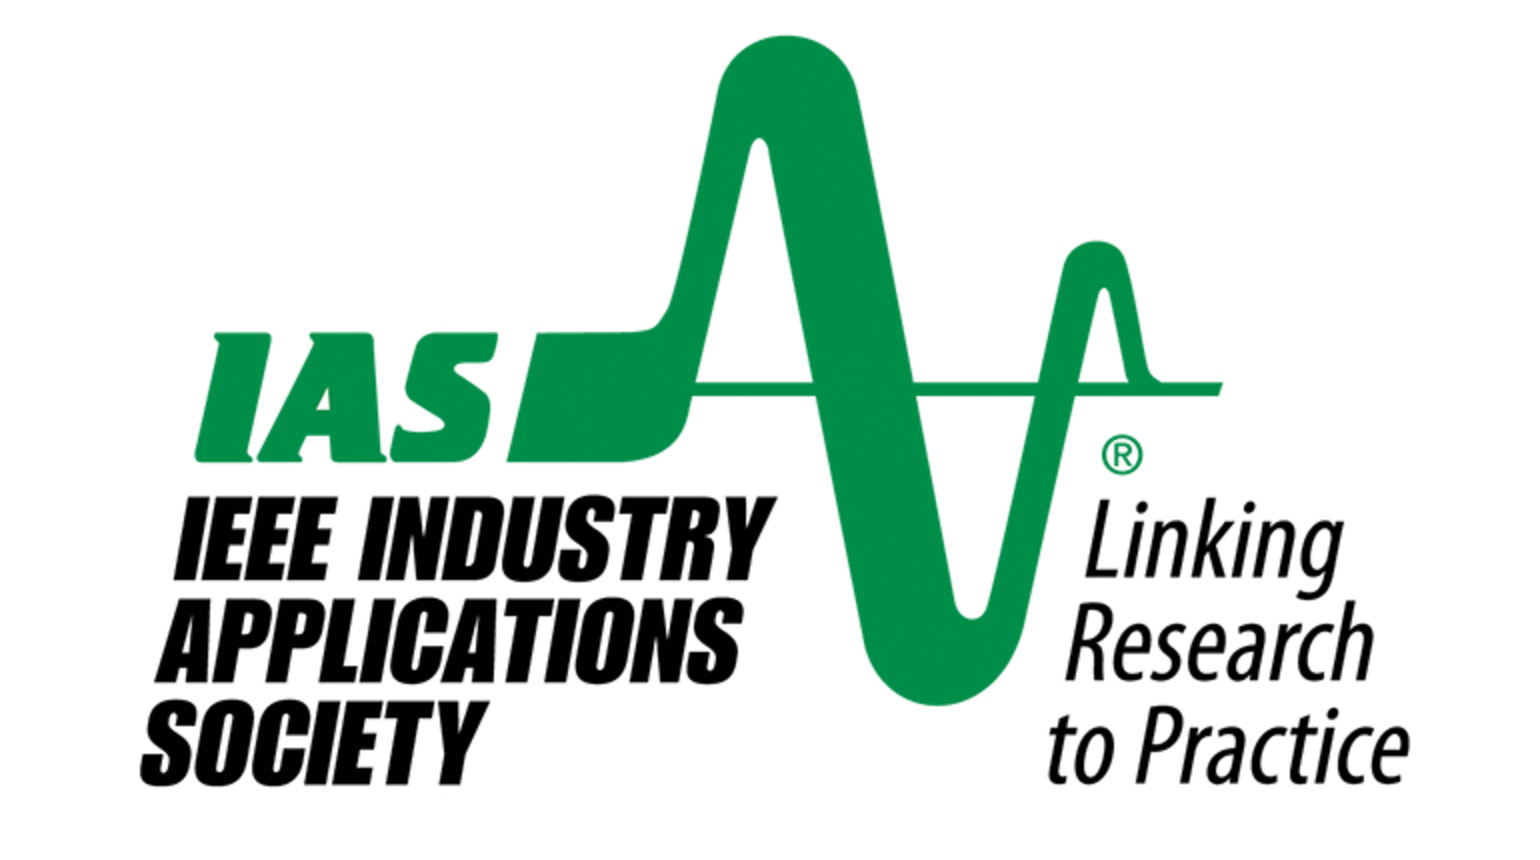 IEEE Industry Applications Society: Linking Research to Practice (9 minutes)